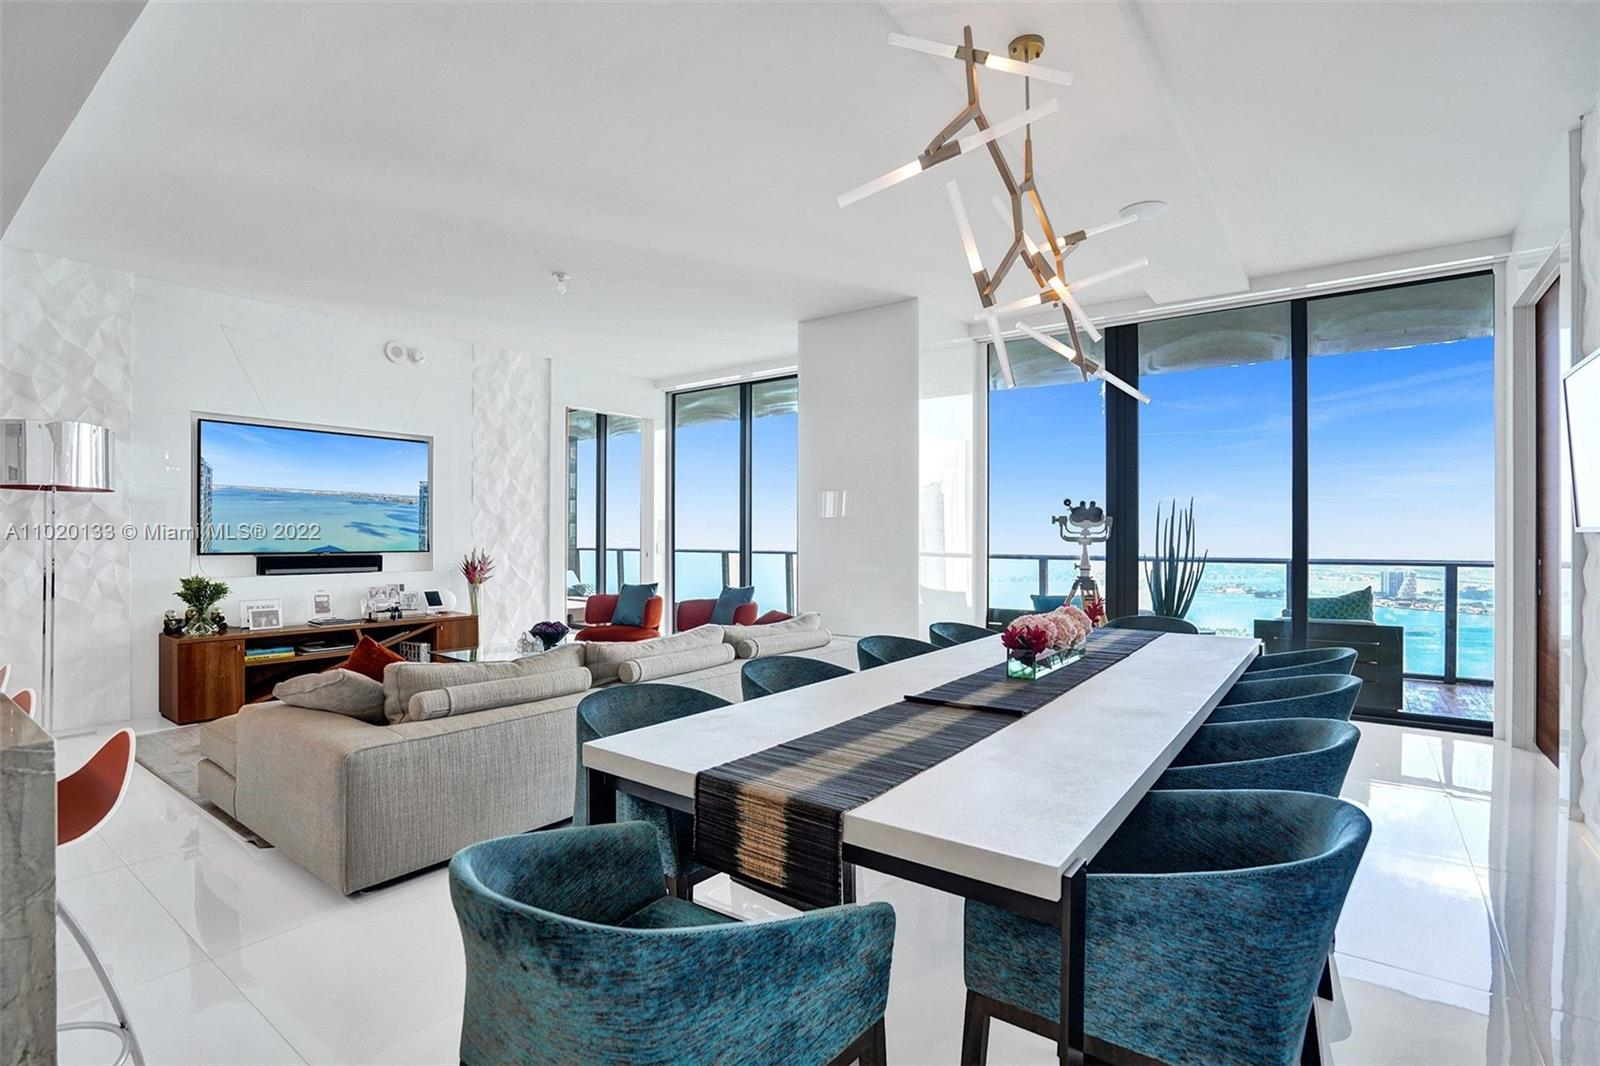 Paraiso Bay #PH5203 - 650 NE 32 ST #PH5203, Miami, FL 33137